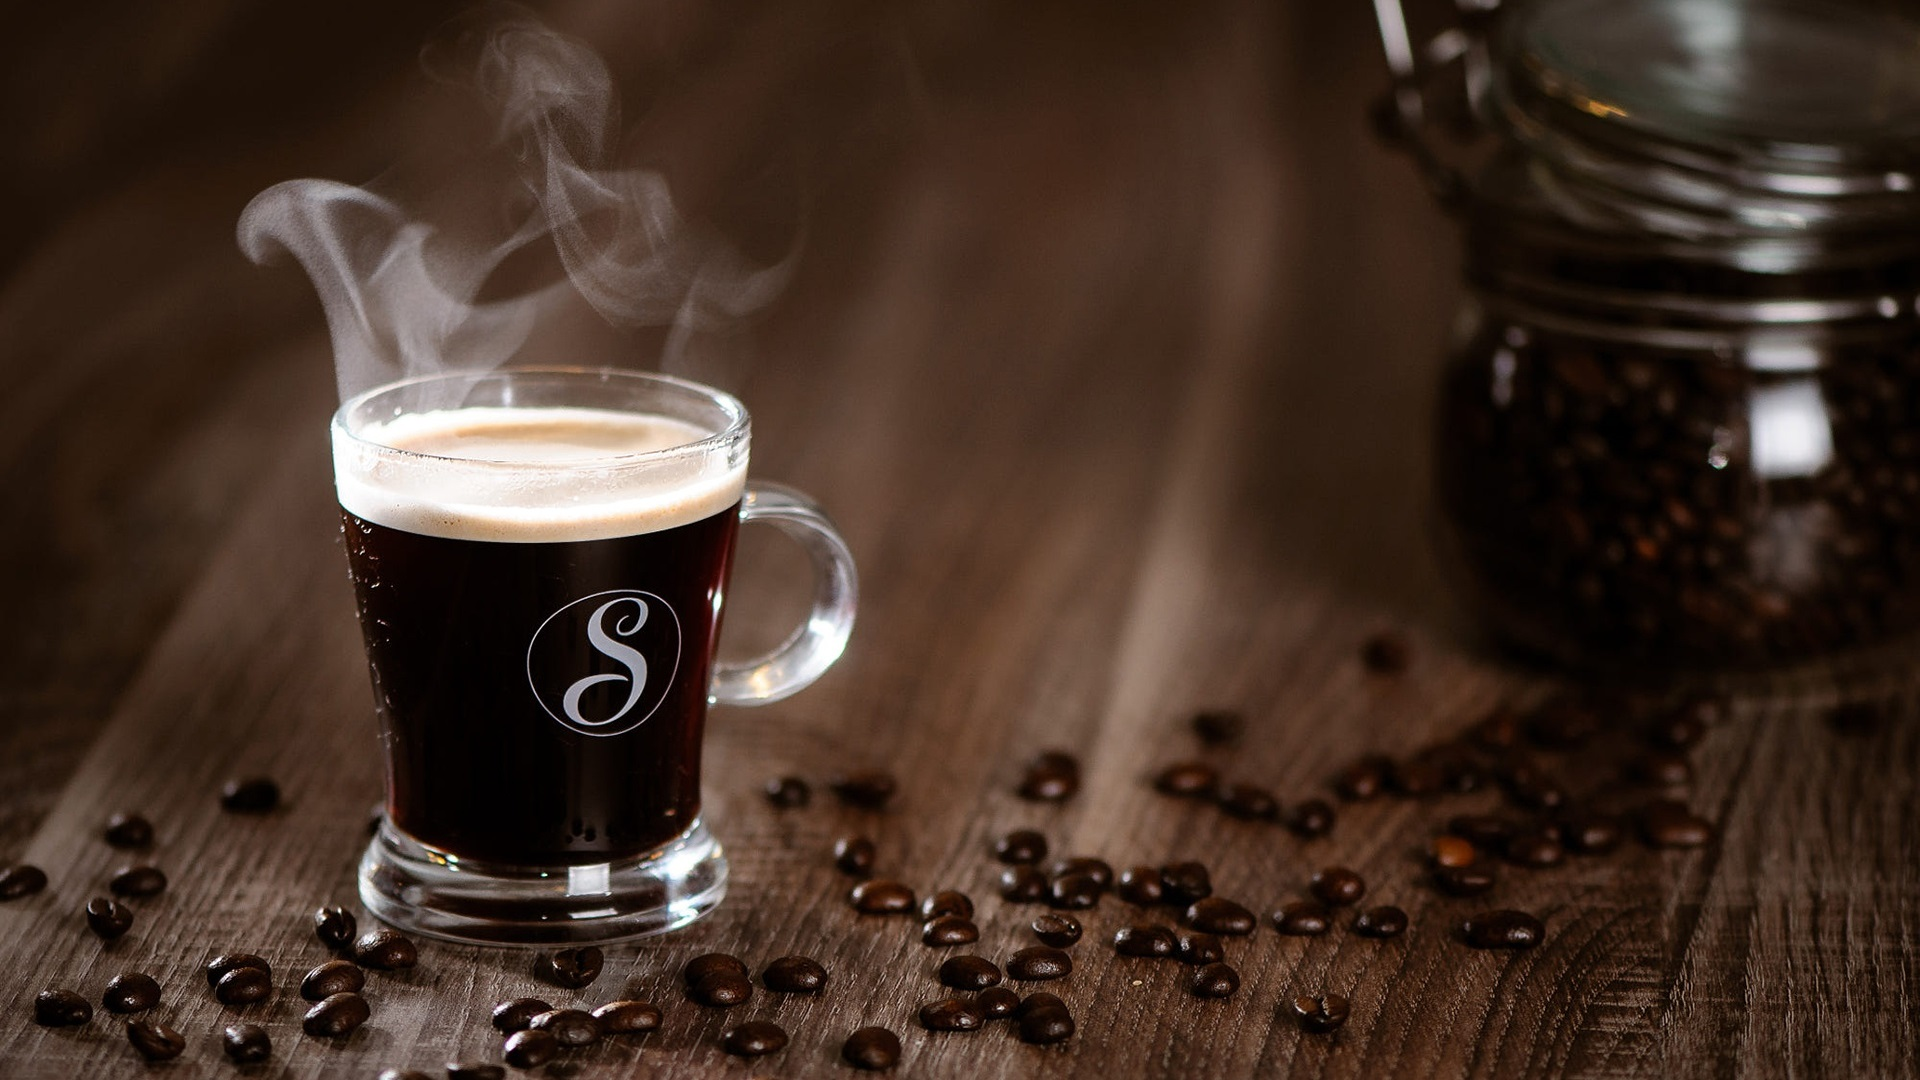 Download Wallpaper 1920x1080 Coffee Glass Cup Steam Full